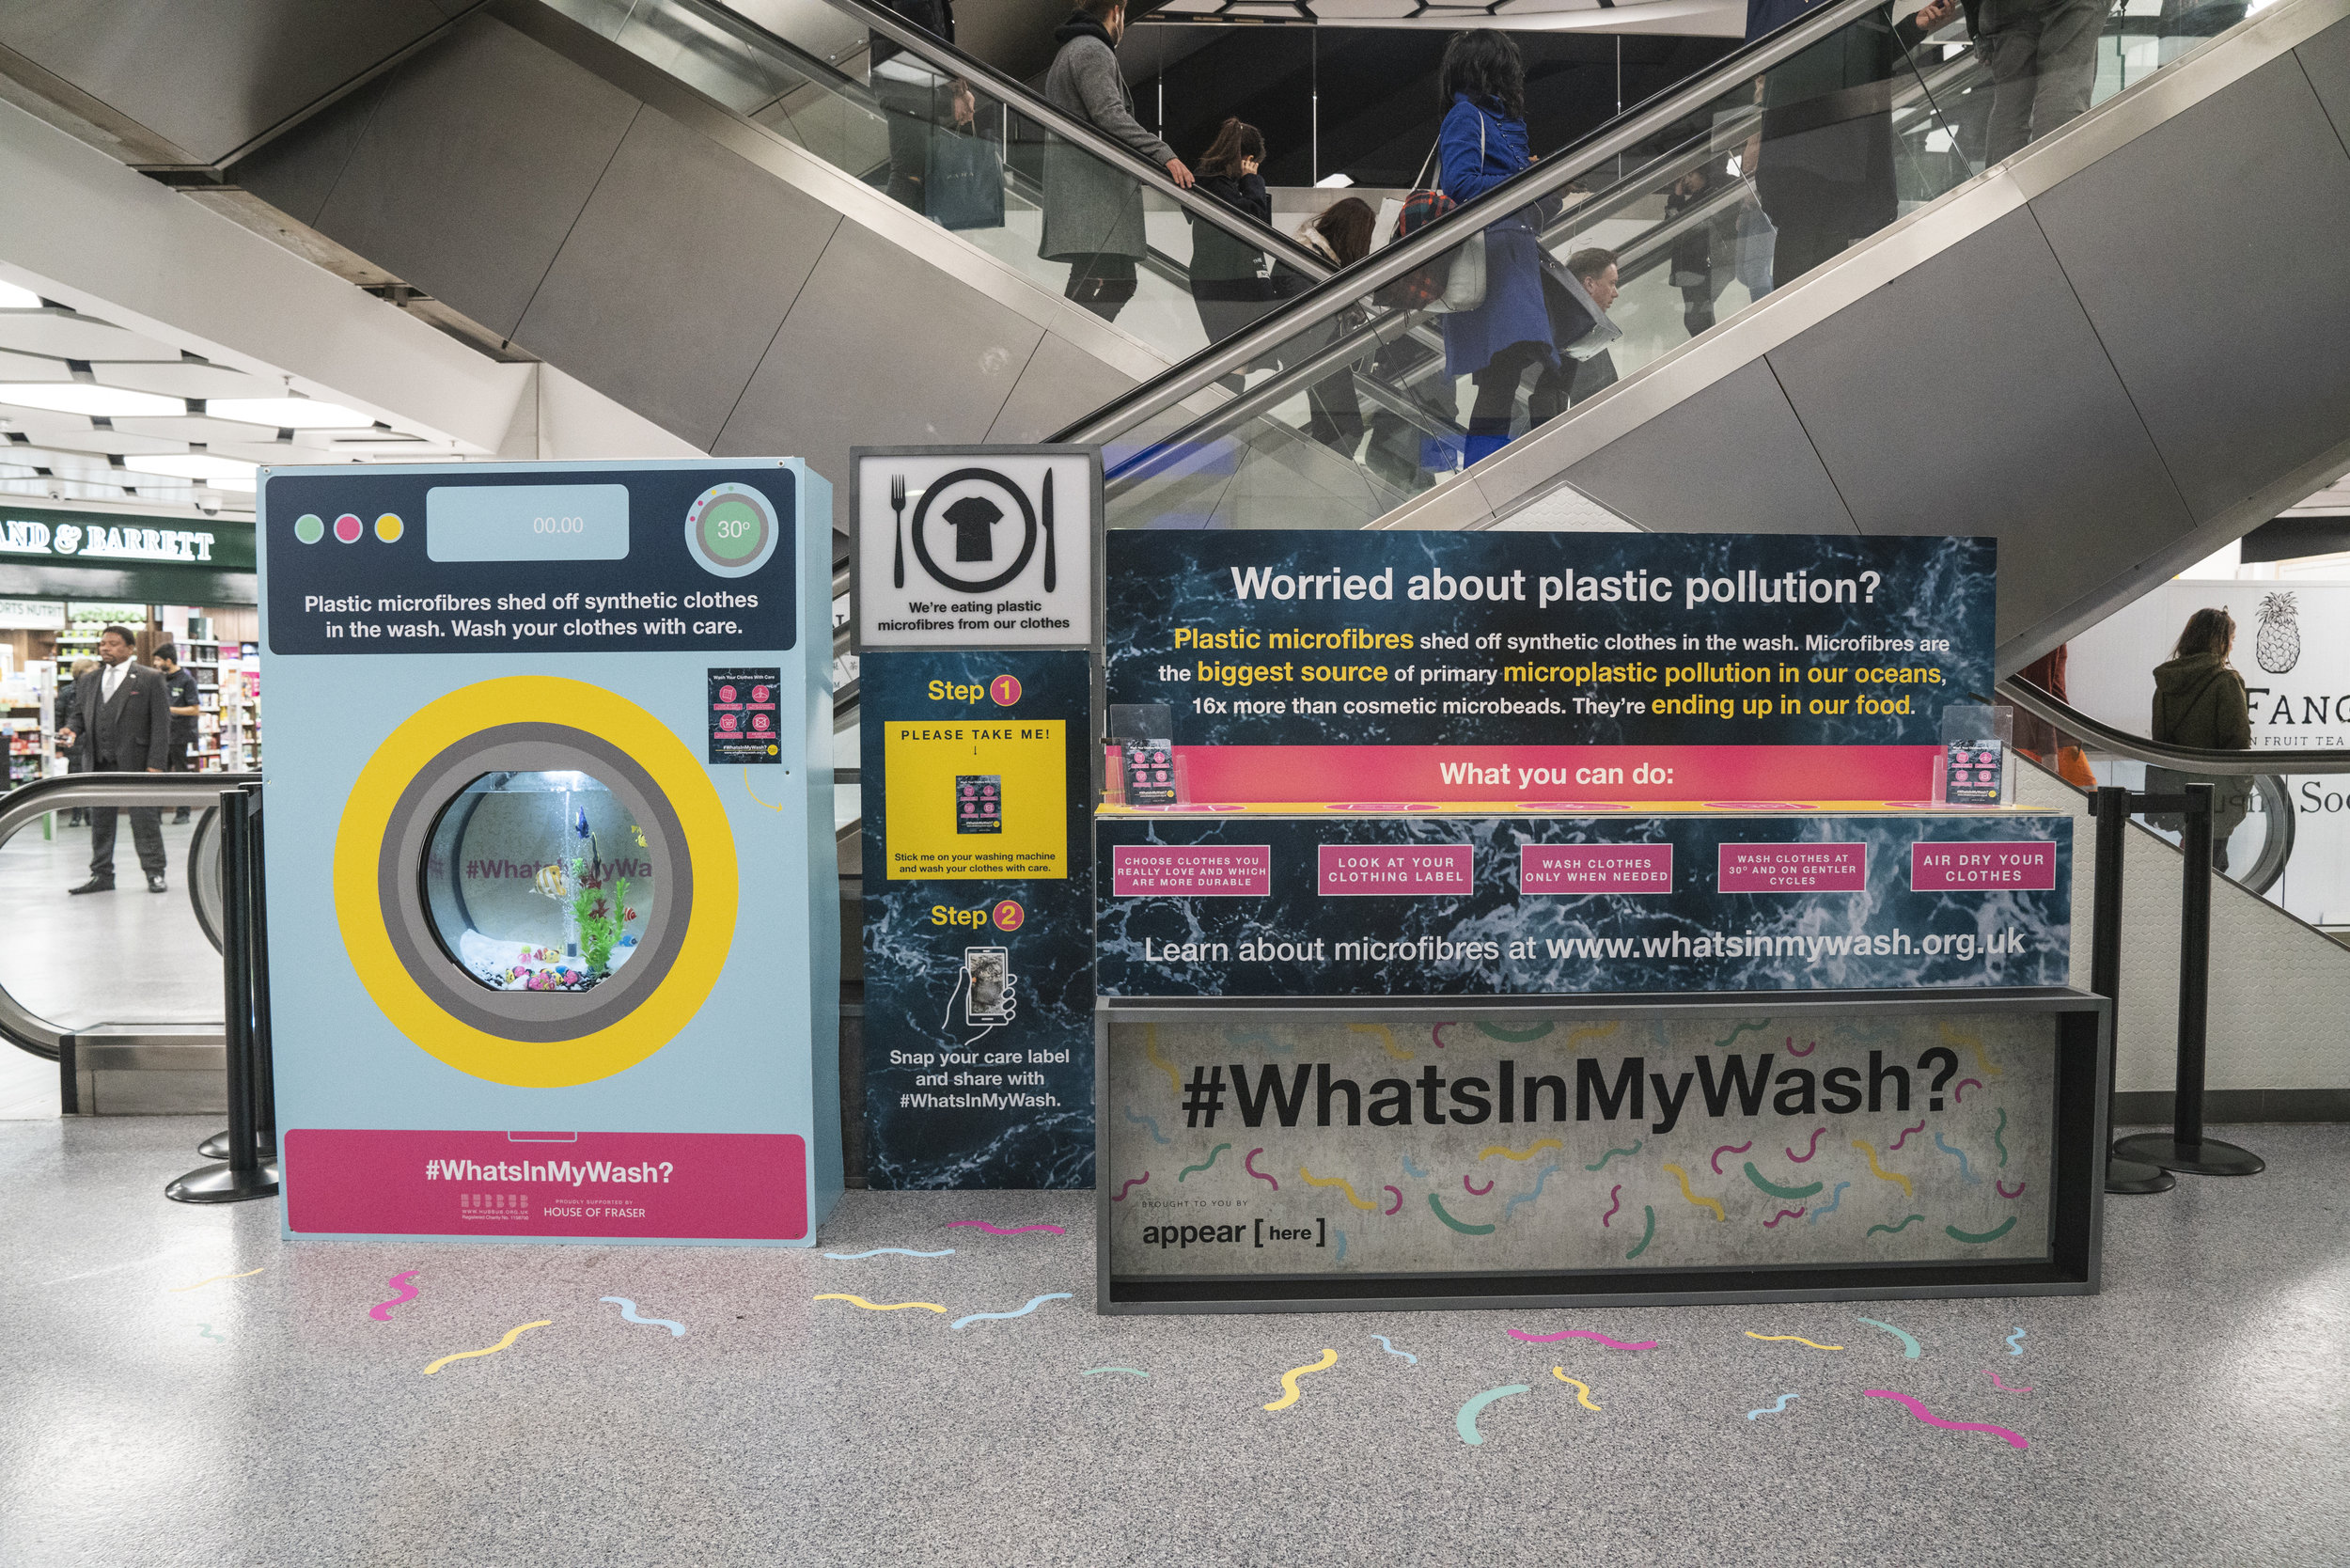 Whats In My Wash? is a campaign which raises awareness of plastic microfibres which are released form our clothing when we wash them. This microfibres are polluting ur oceans and currently contribute to over 1/3 of all microplastics in our oceans.